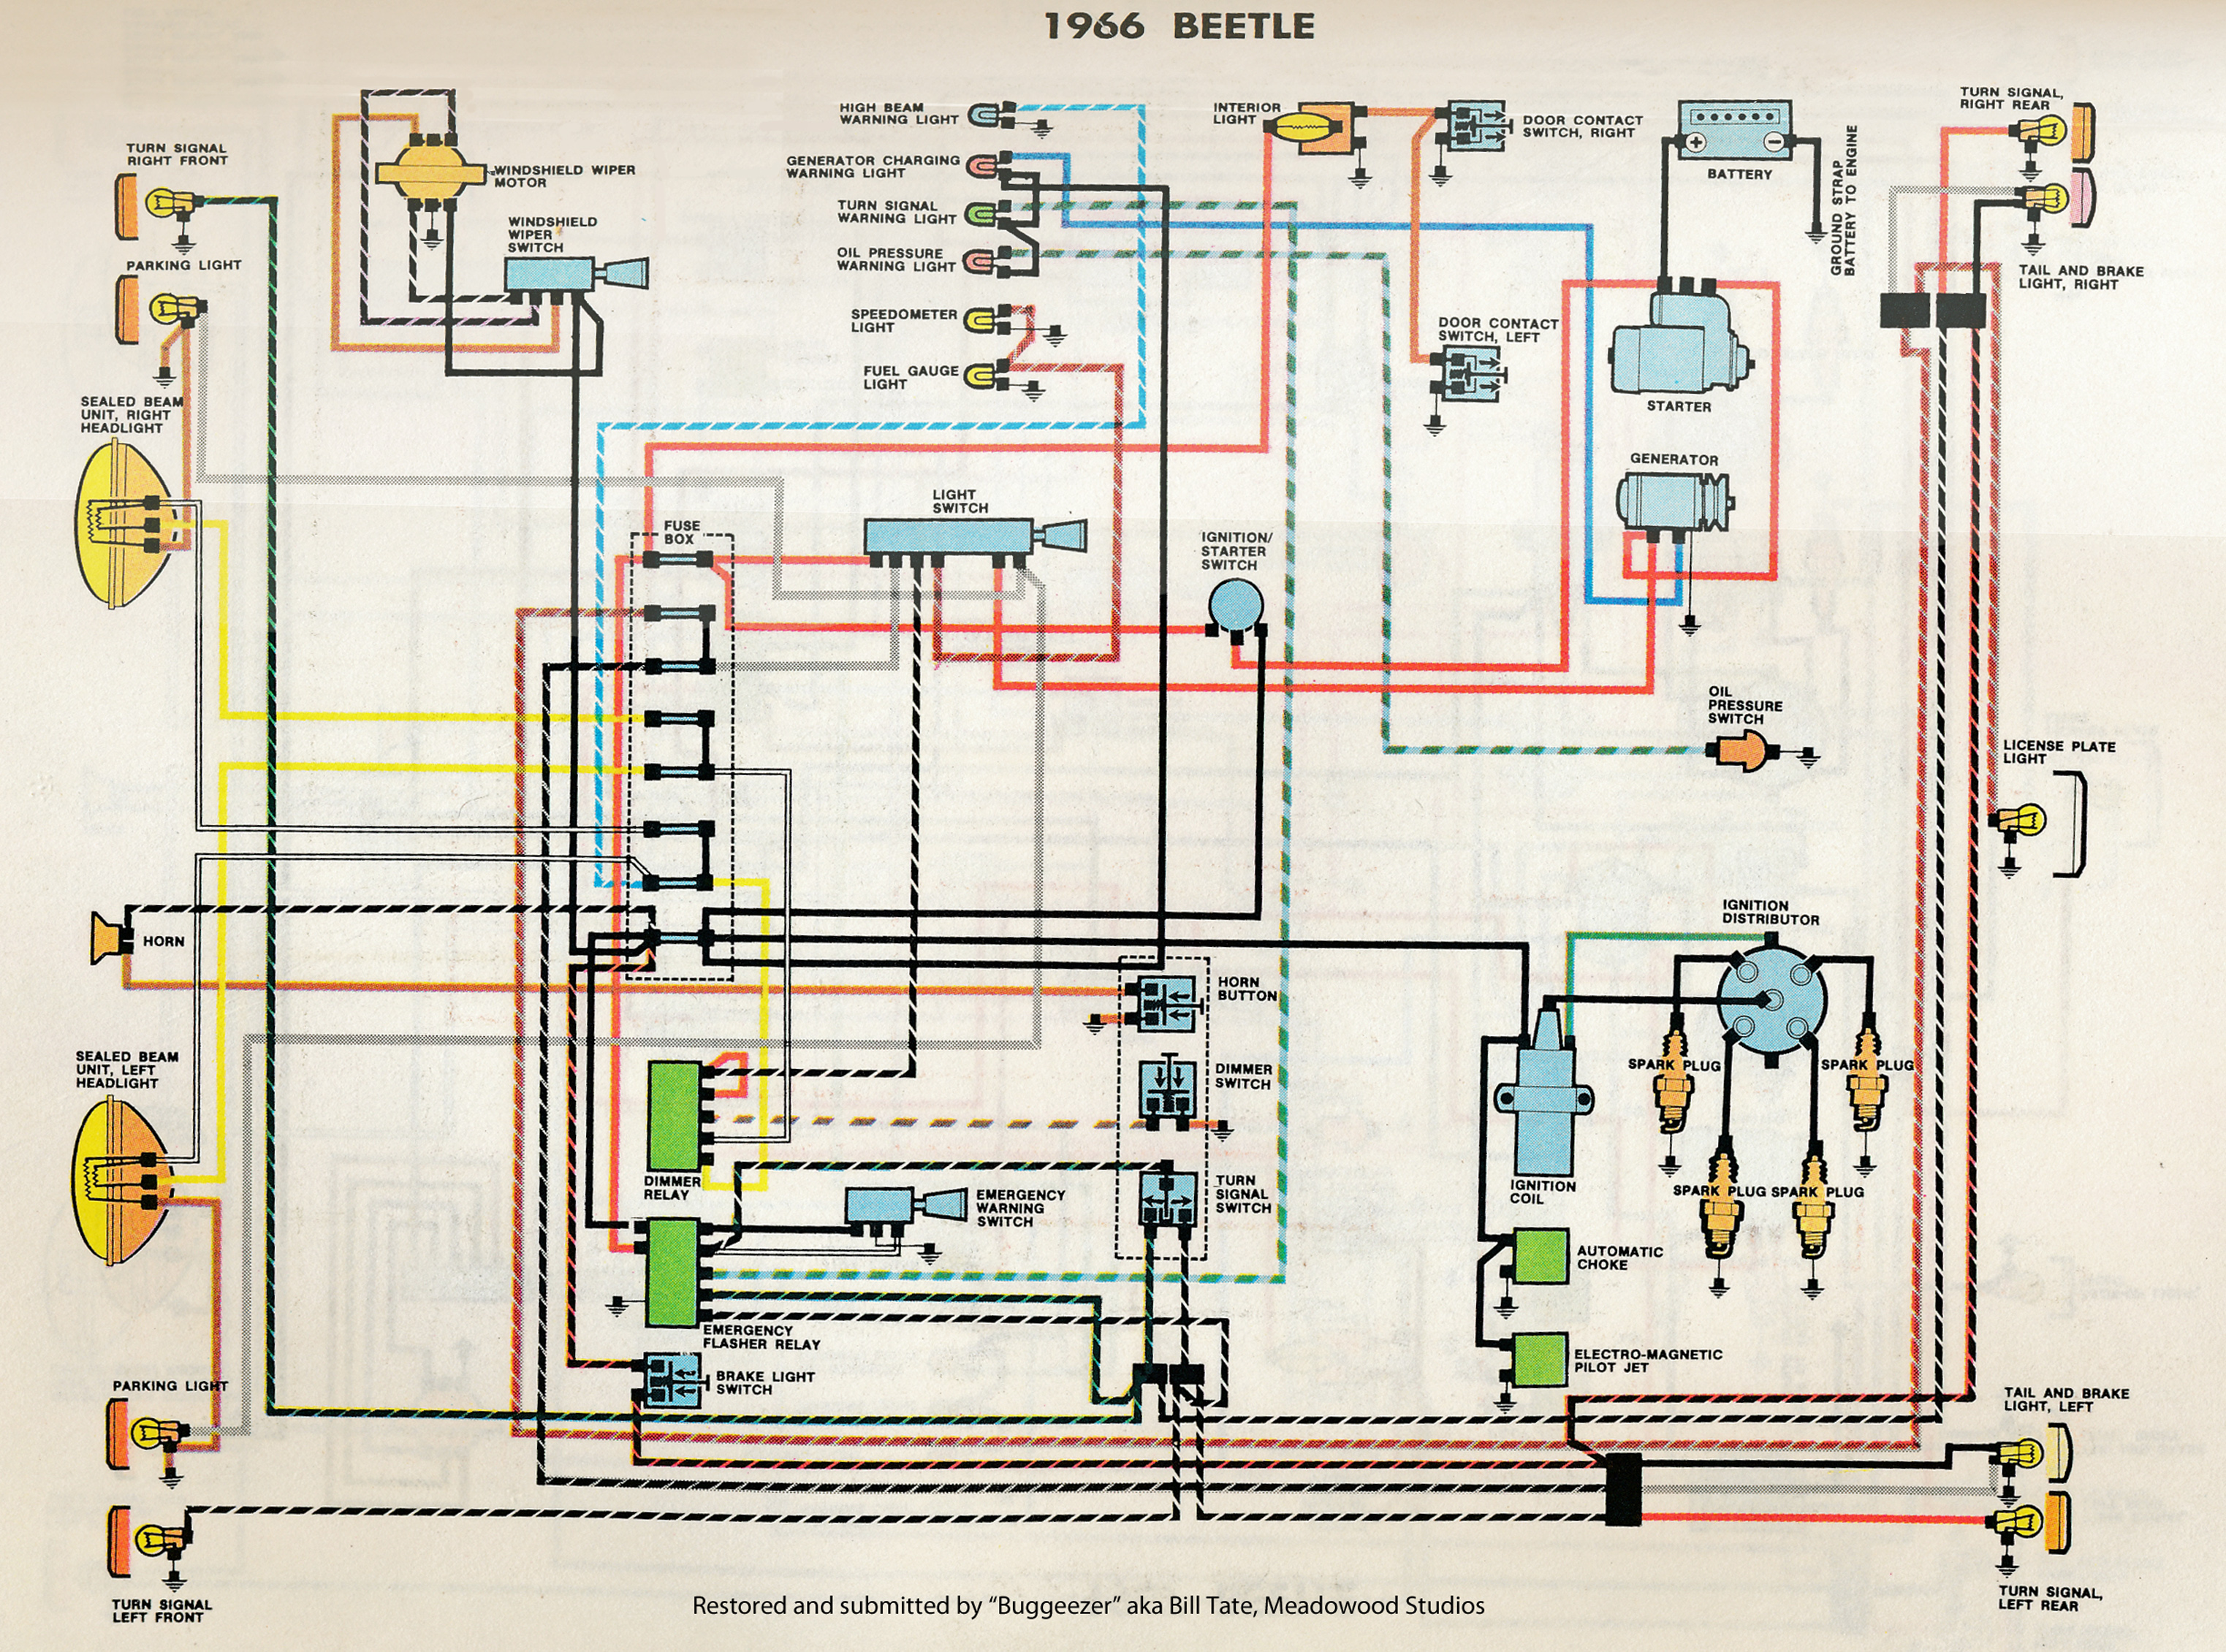 Type 1 Wiring Diagrams Switch Additionally Light Diagram Also Lighting